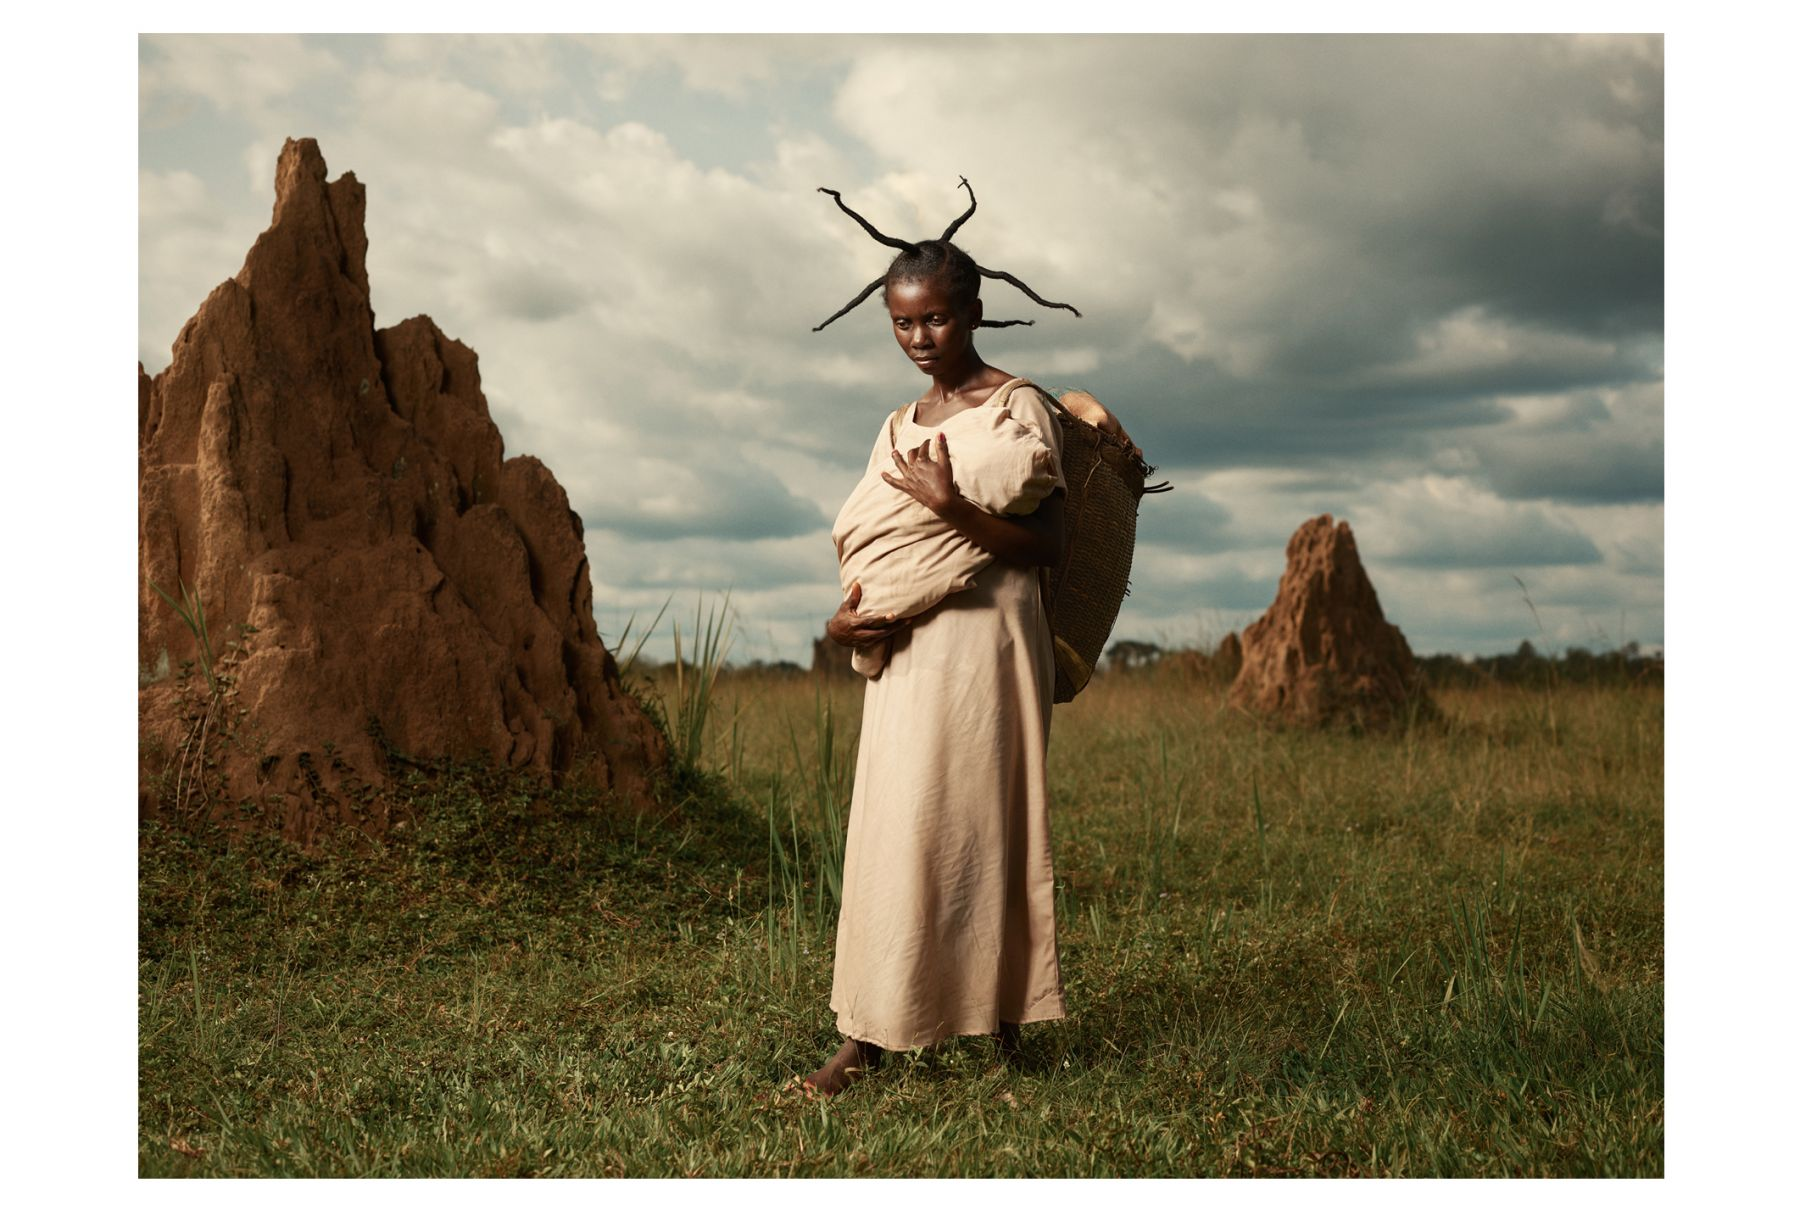 Pieter Henket, My Love, from the series Congo Tales, Howard Greenberg Gallery, 2020